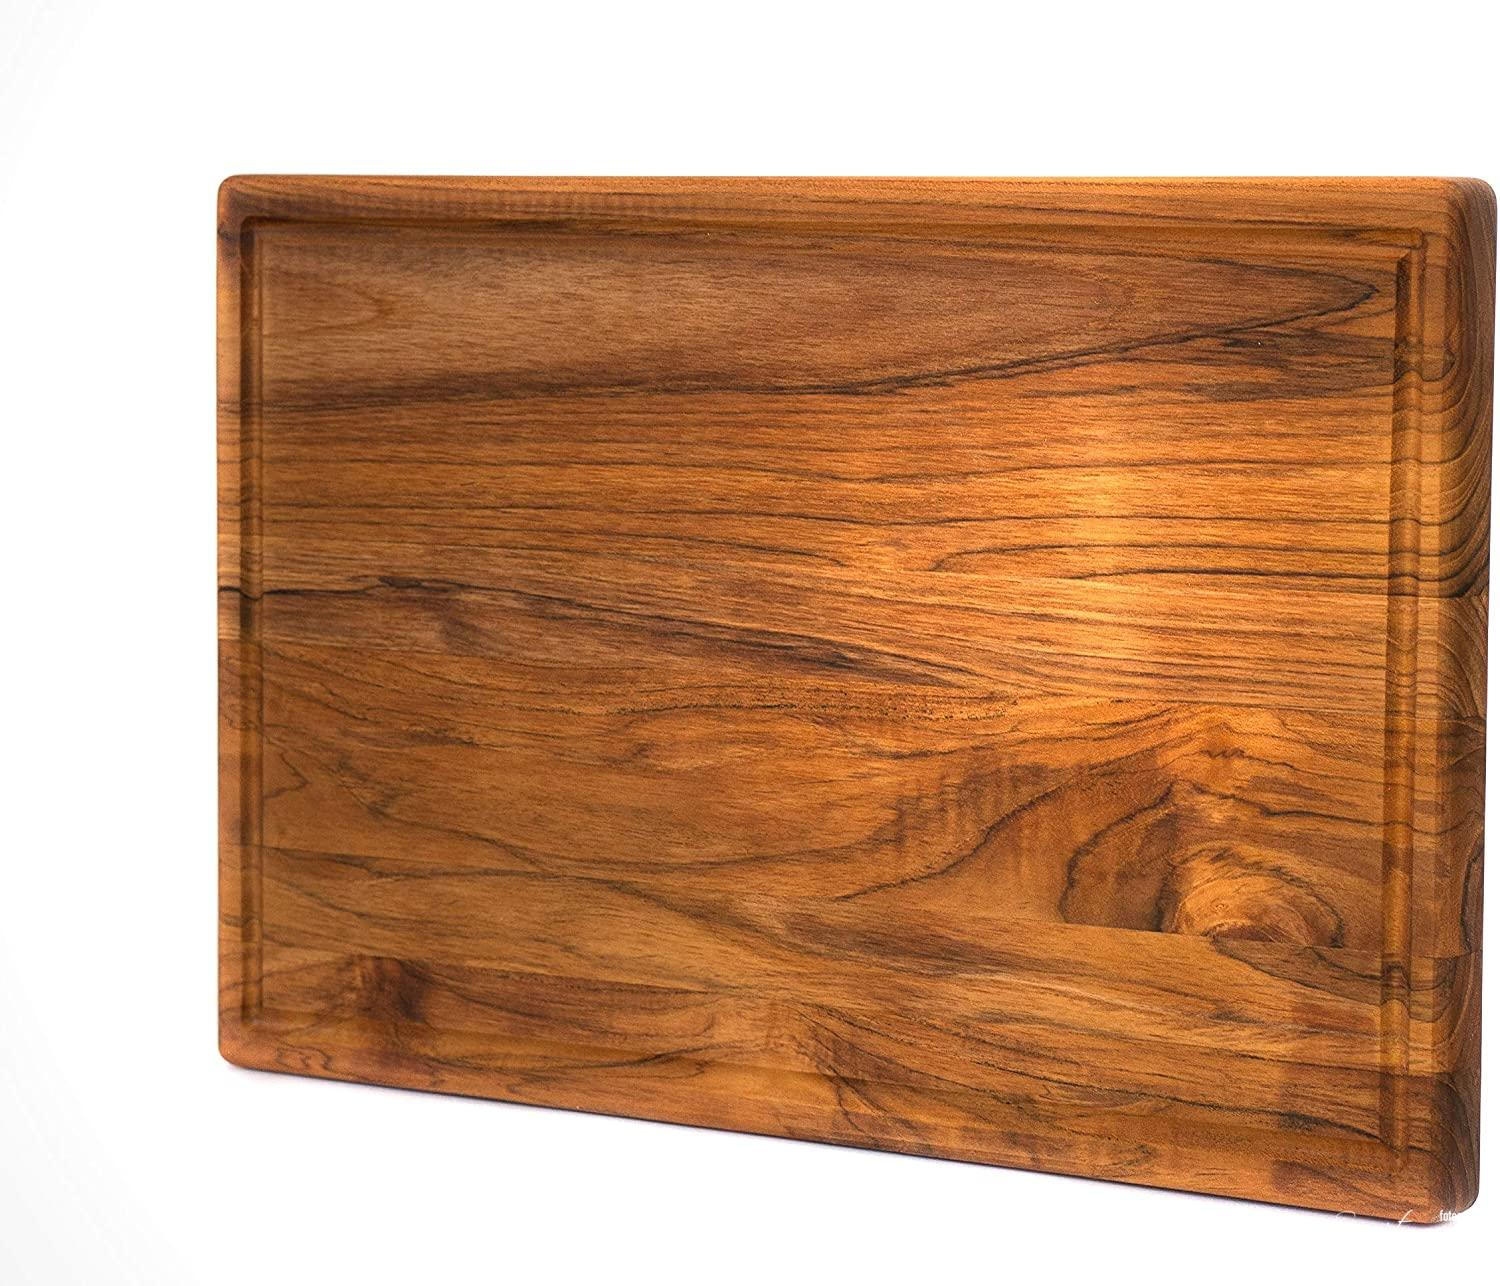 Premium Grade-A Teak Wood Cutting Board Cured with Organic Beeswax, Reversible with Juice Groove